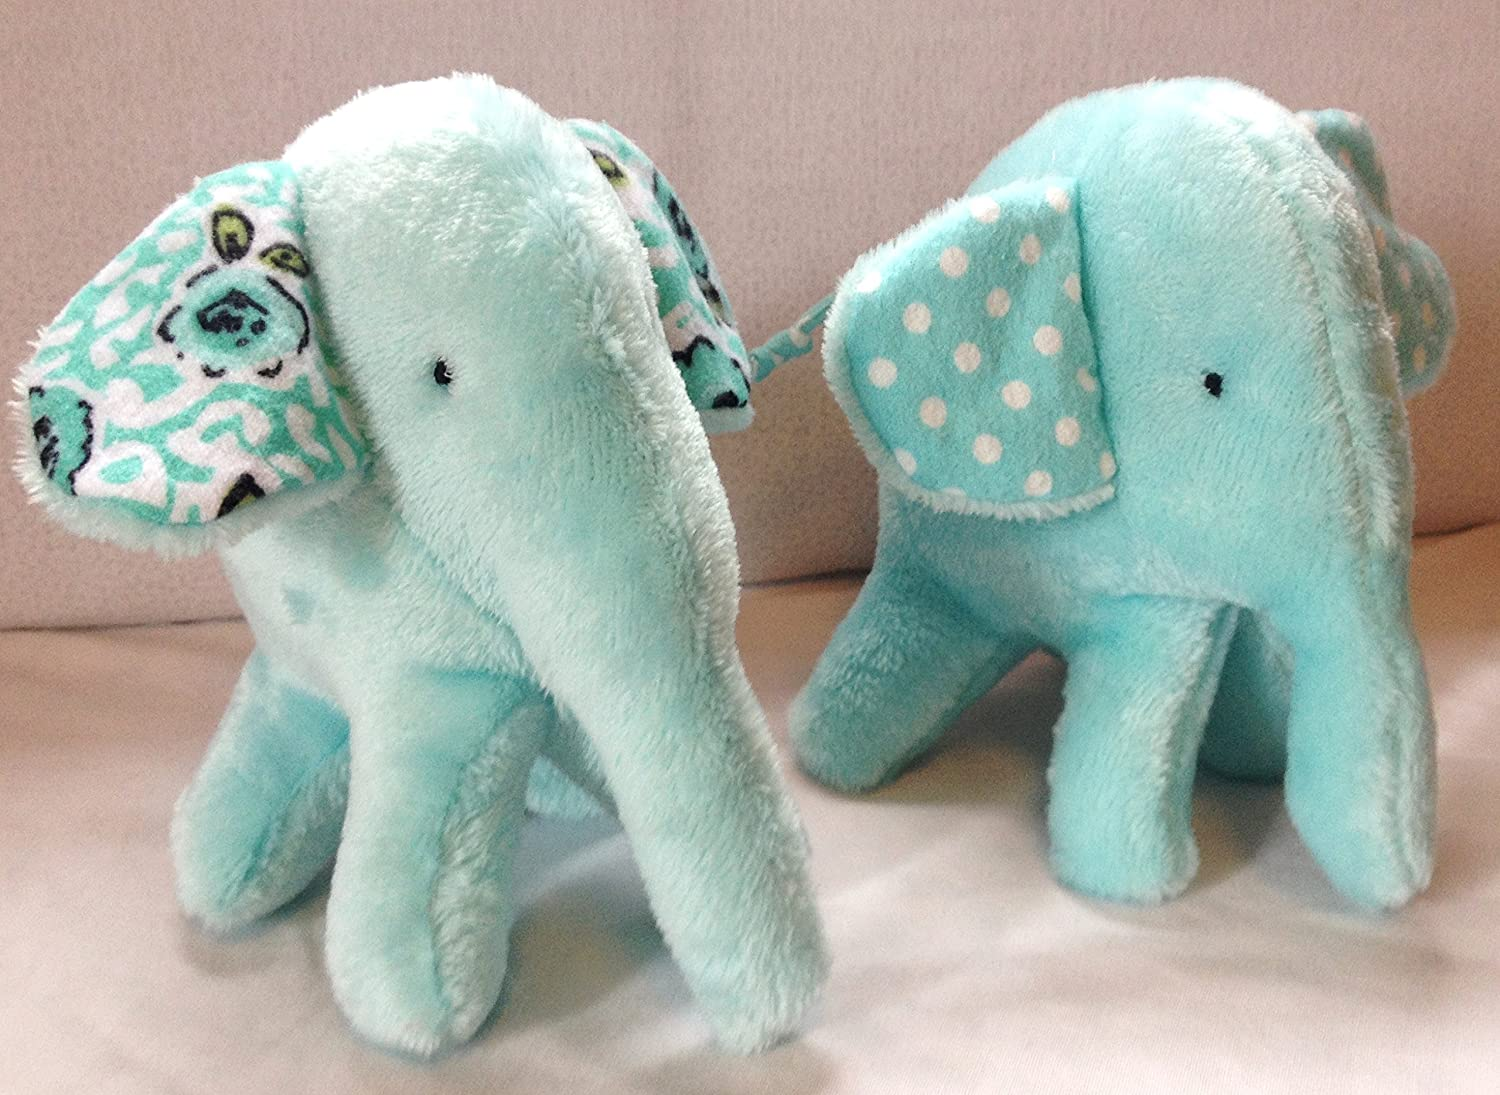 ELEPHANTS PALE BLUE Double Sided Supersoft Cuddlesoft Fleece Fabric Material